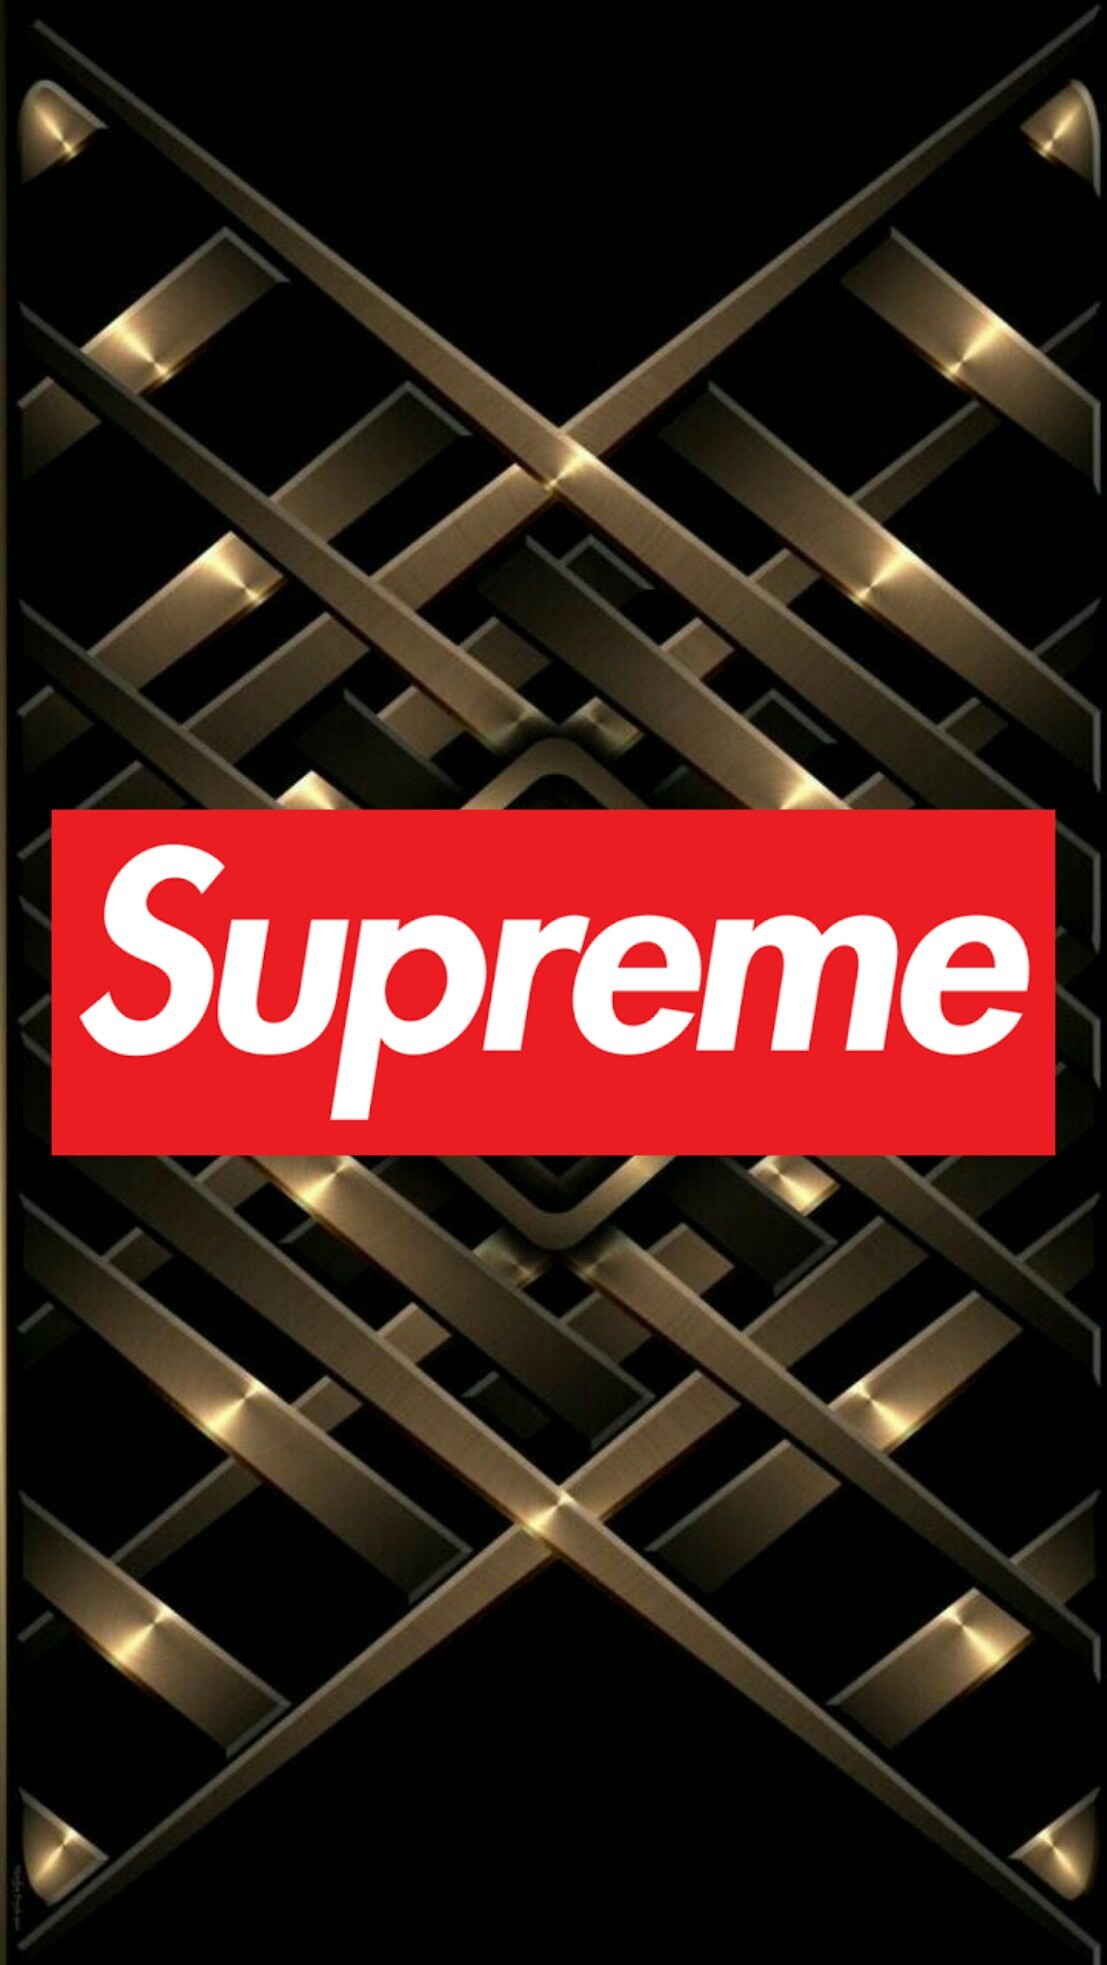 Supreme X Lv Wallpaper 4k City Of Kenmore Washington